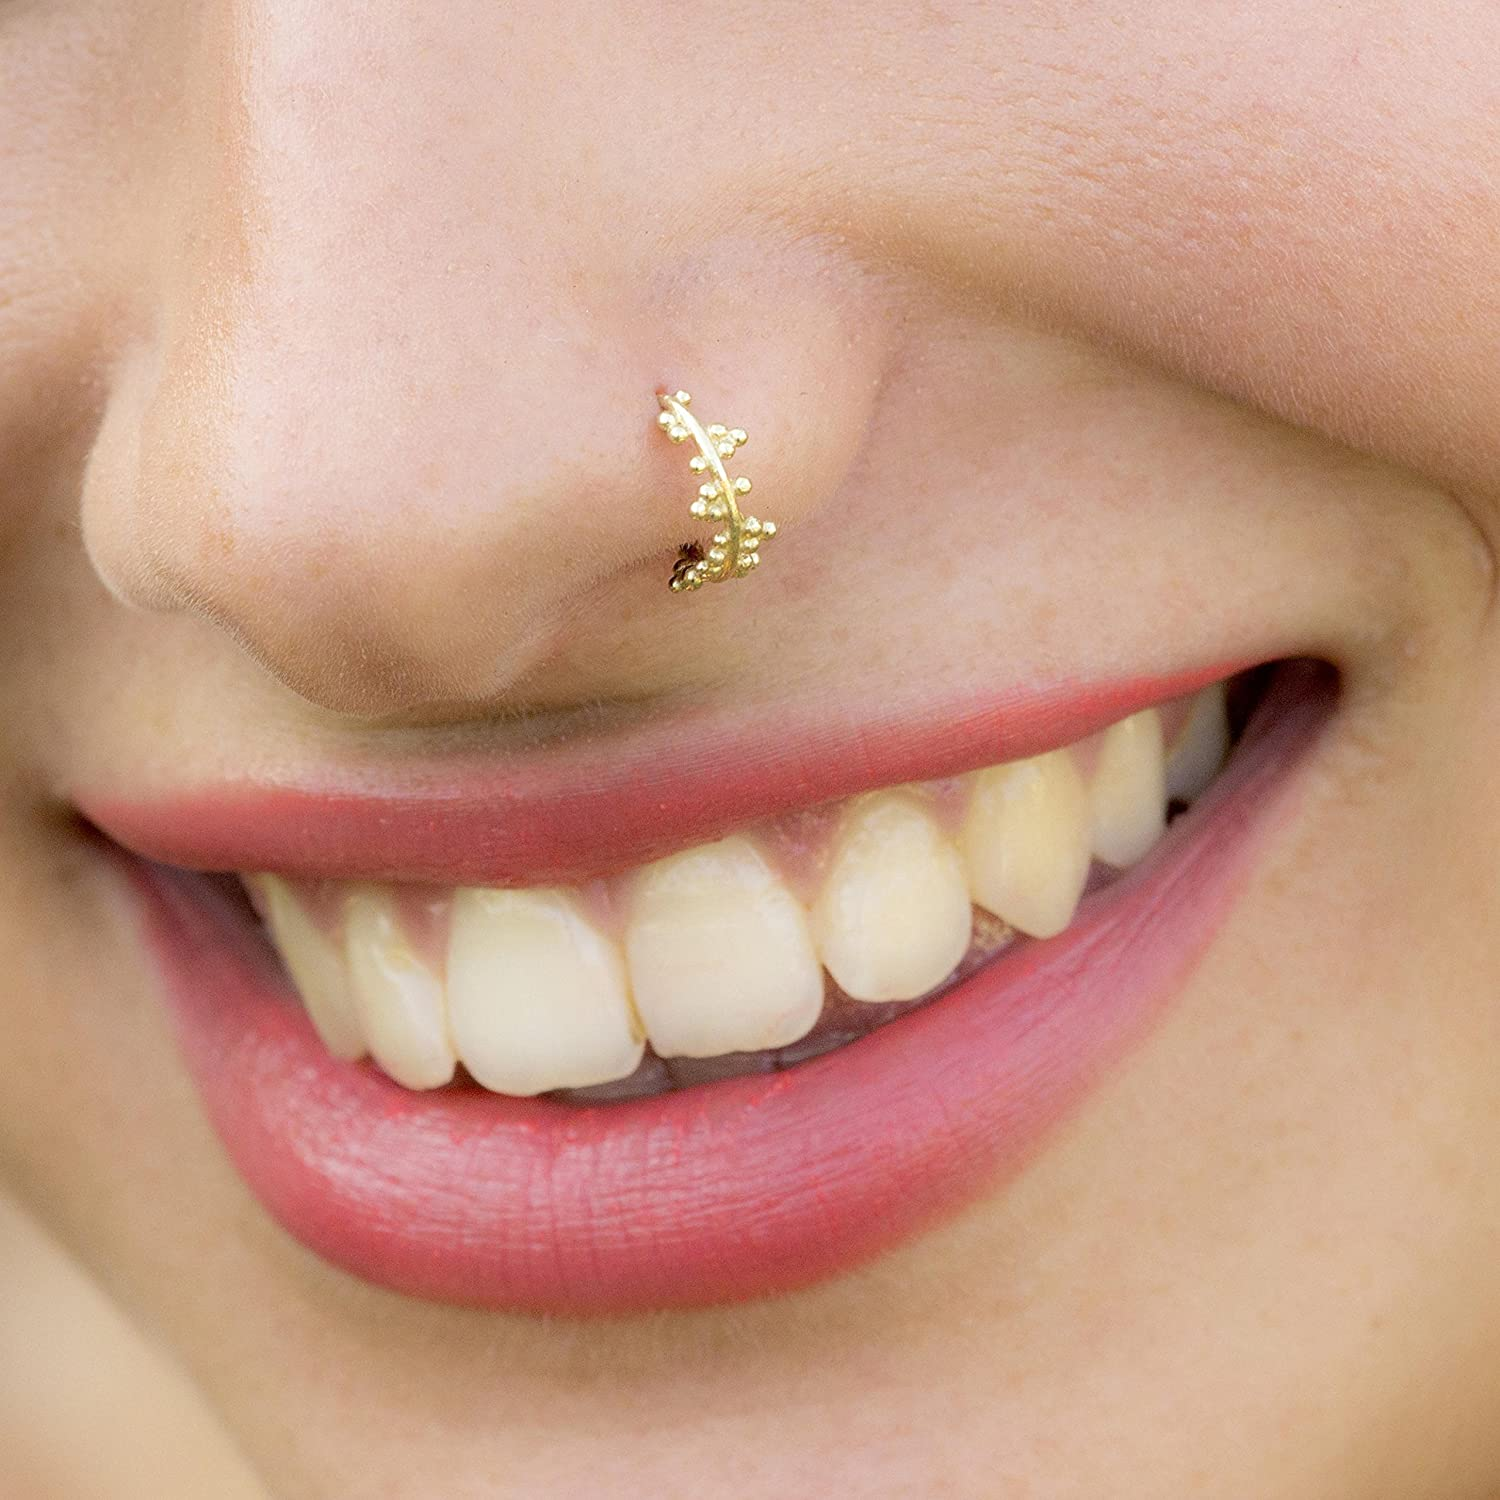 Unique Nose Hoop, Gold Plated Nose Ring Piercing, Tribal Indian Style, 20g, Handmade Body Jewelry by Alagia